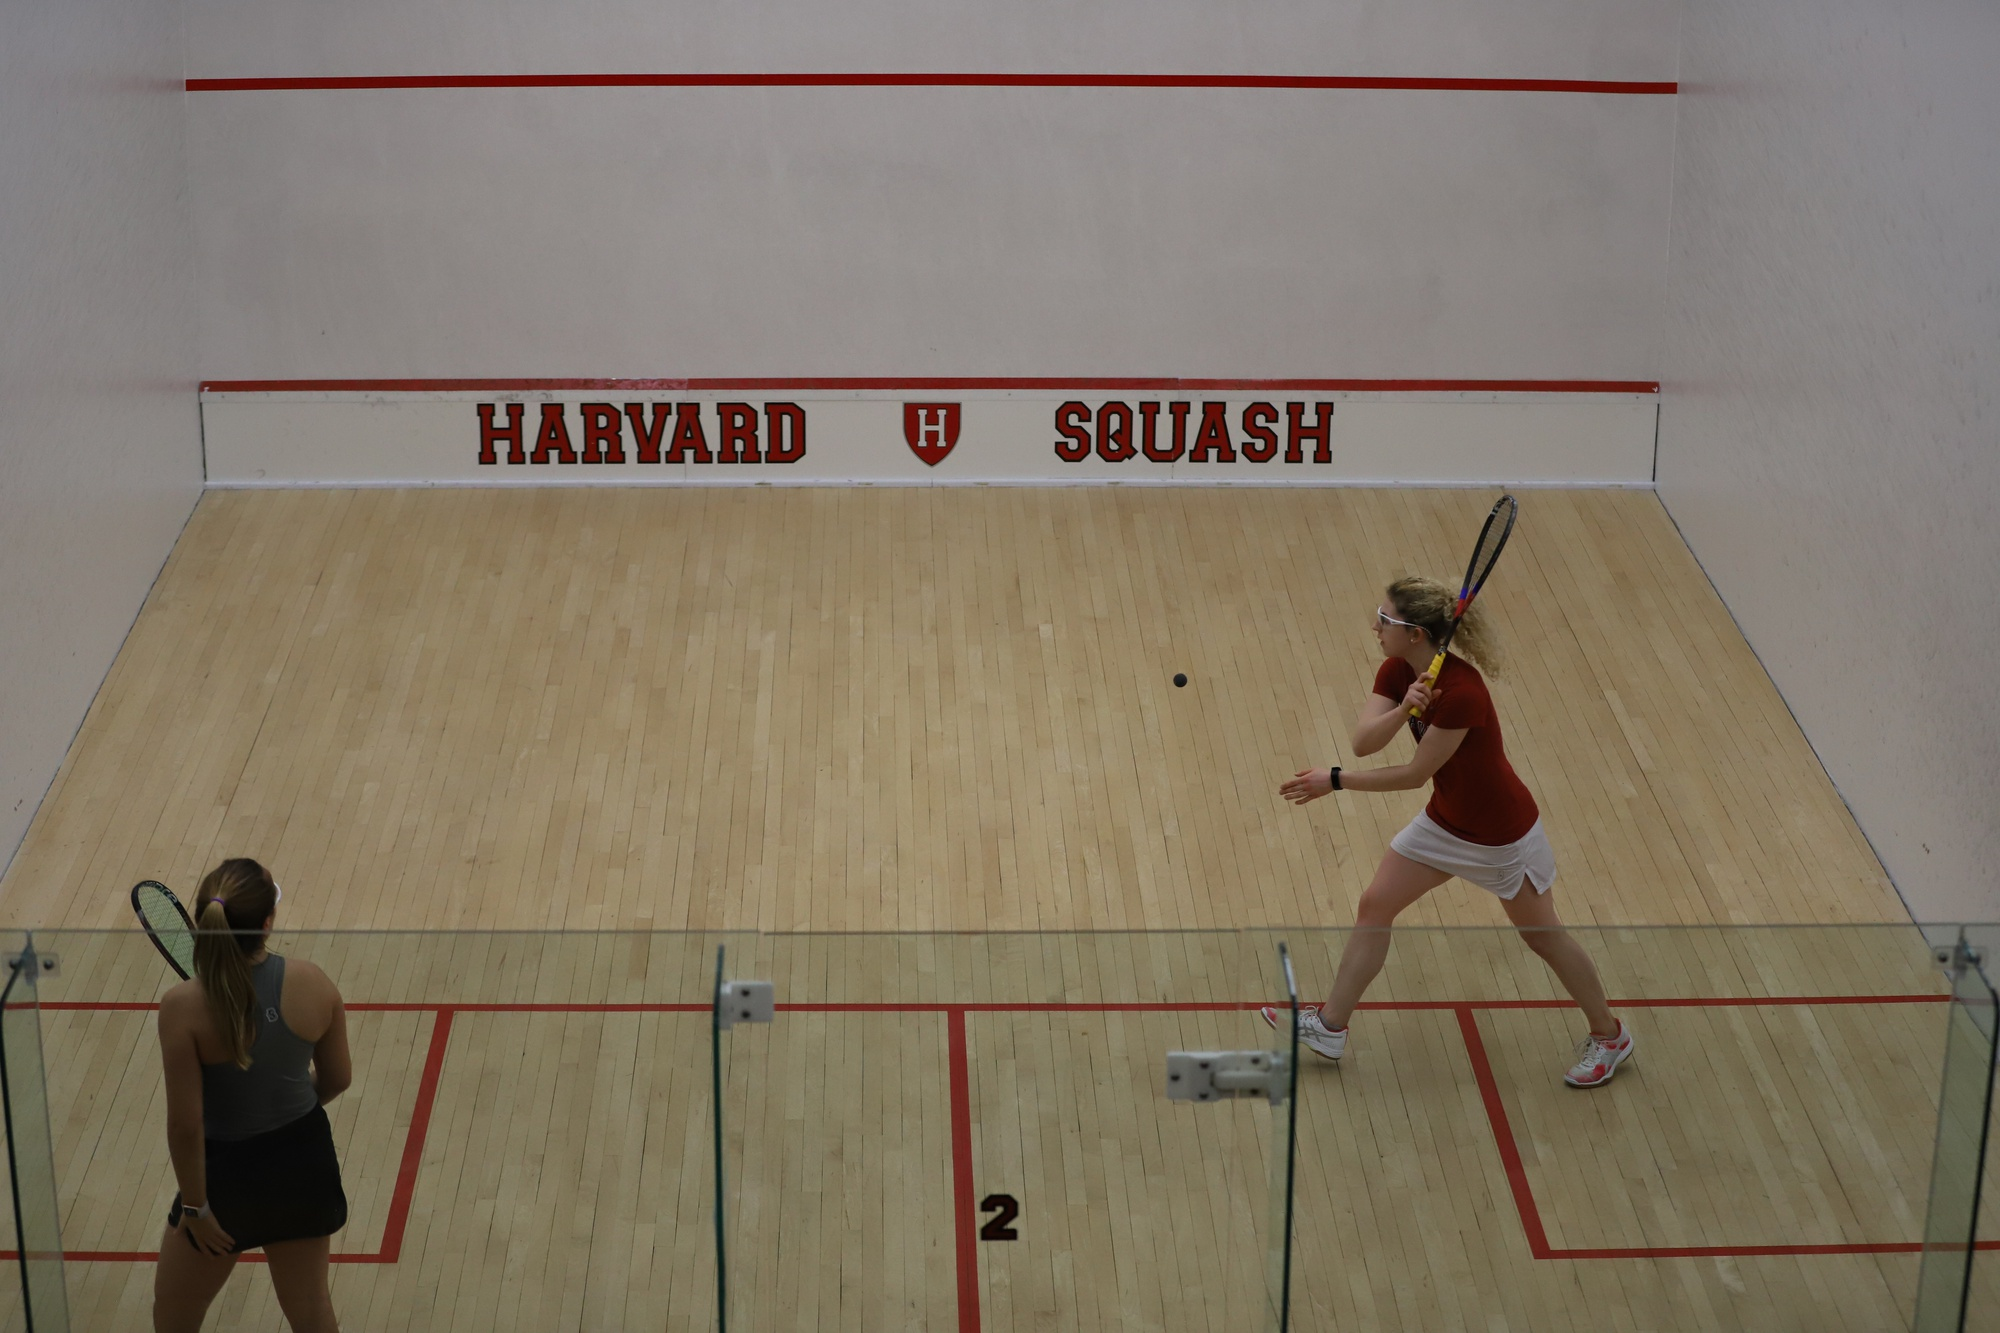 Senior Gina Kennedy wrapped up her Harvard career with her third straight undefeated campaign, making her total record at Harvard an astounding 54-2.